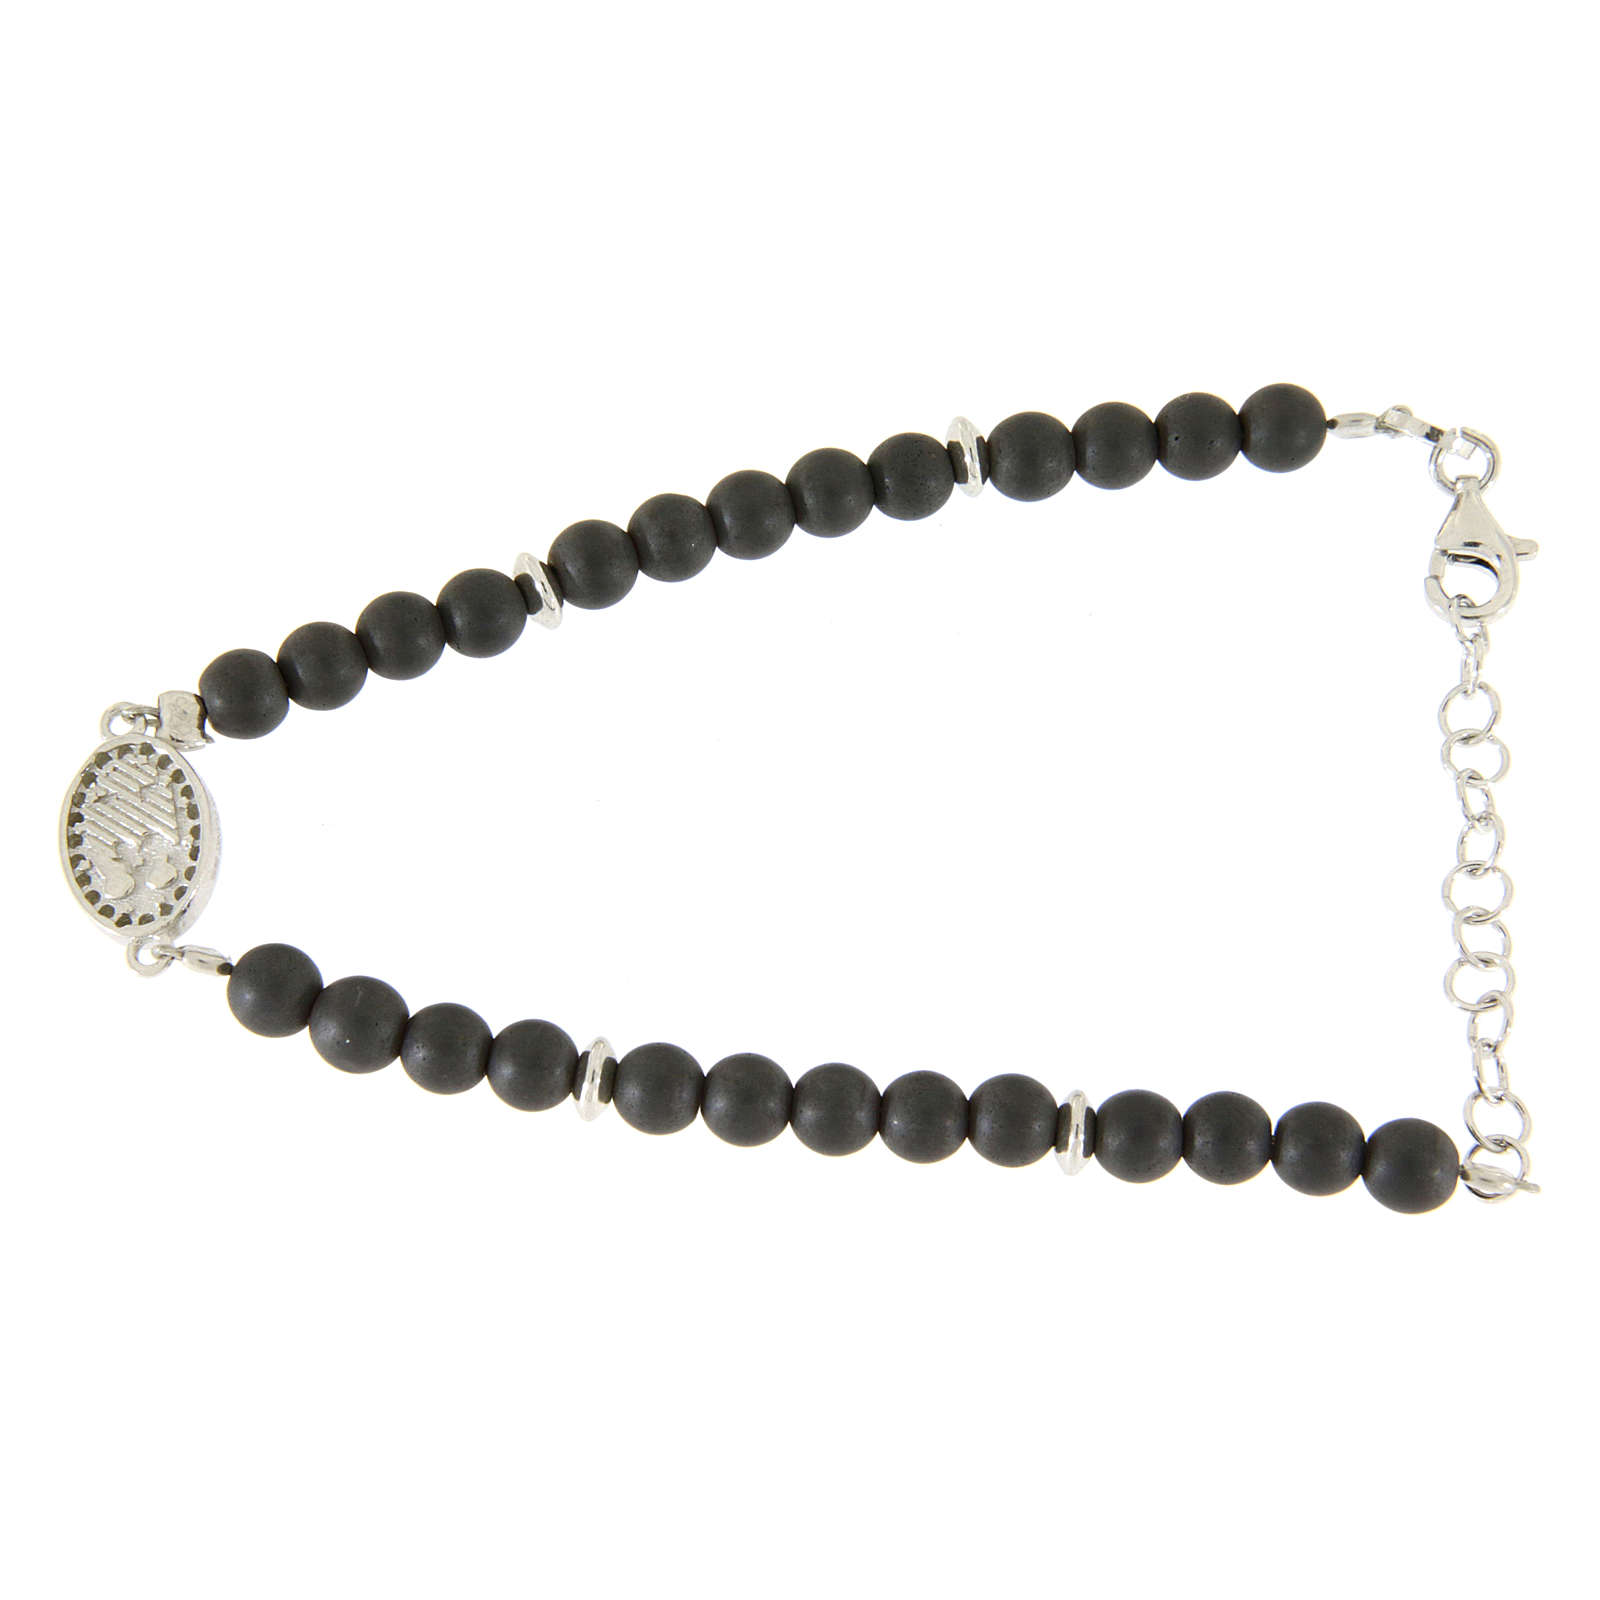 Bracelet with opaque hematite balls, details and Saint Rita medalet with white zircons 4